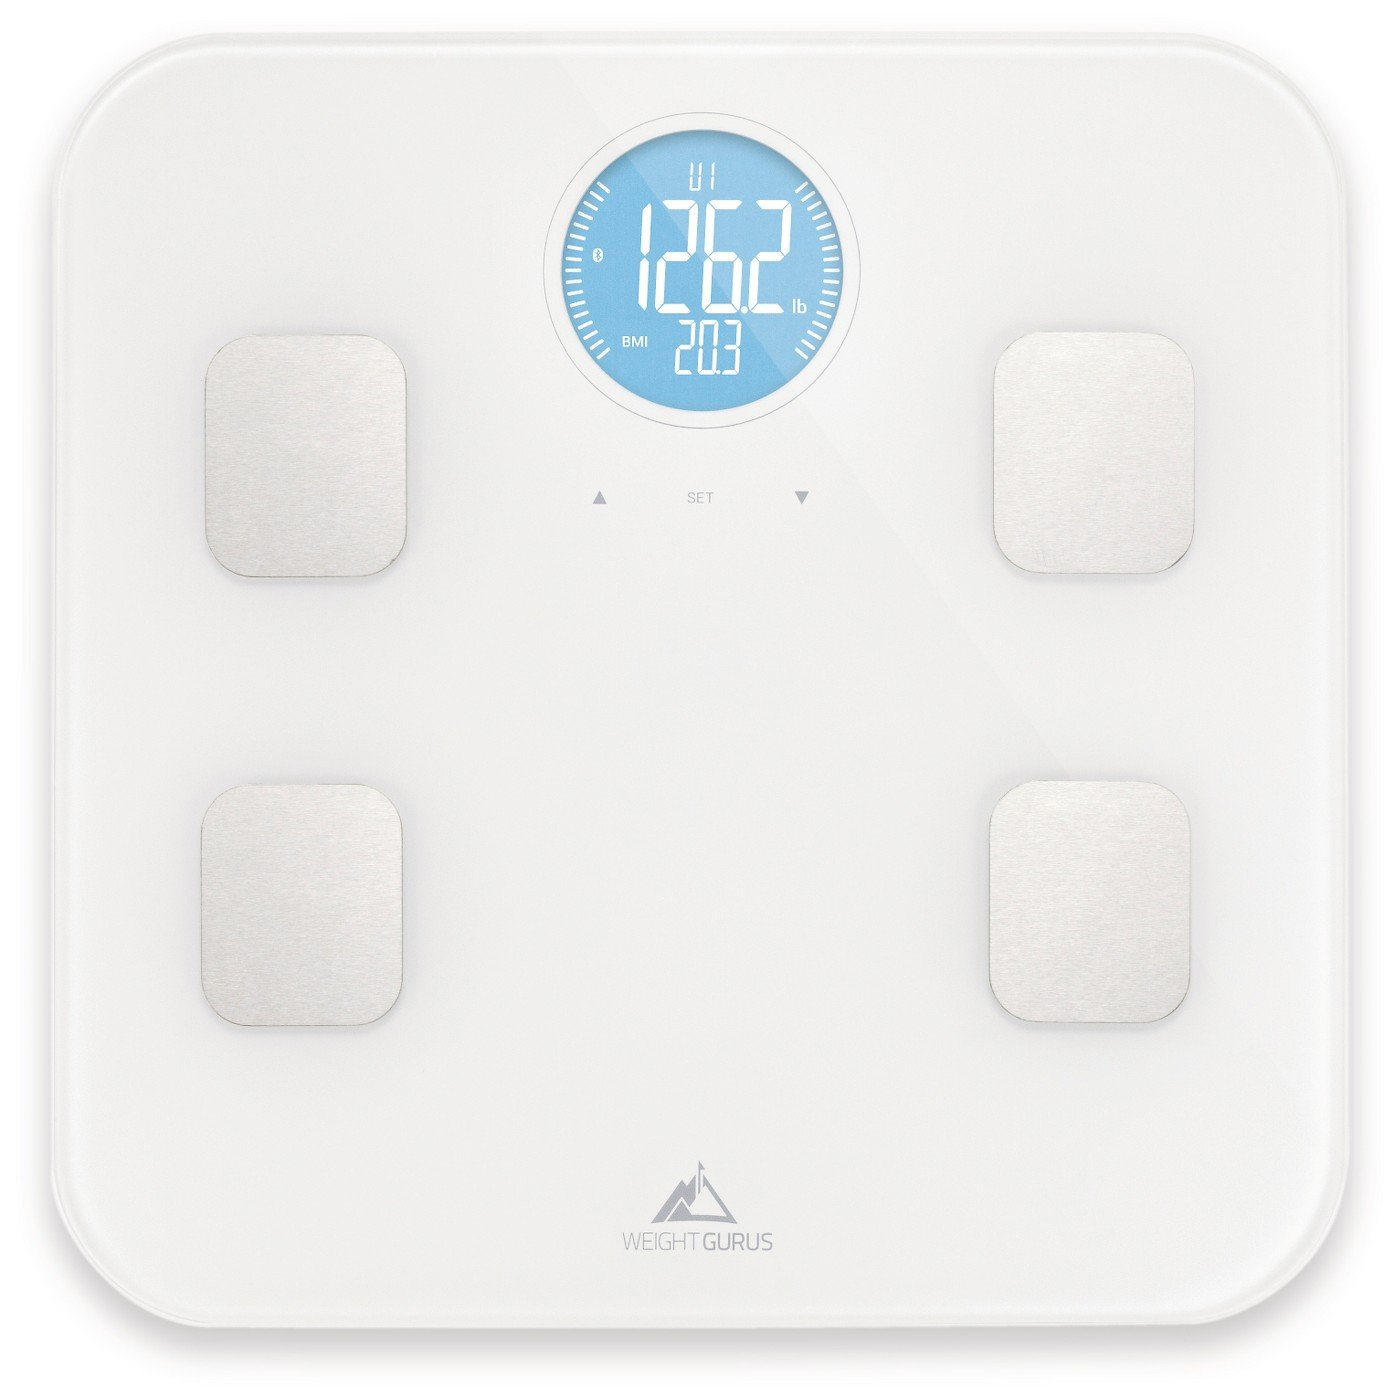 Weight Gurus Bluetooth Body Composition Scale, 8 Profiles, White - Up to 18 Years